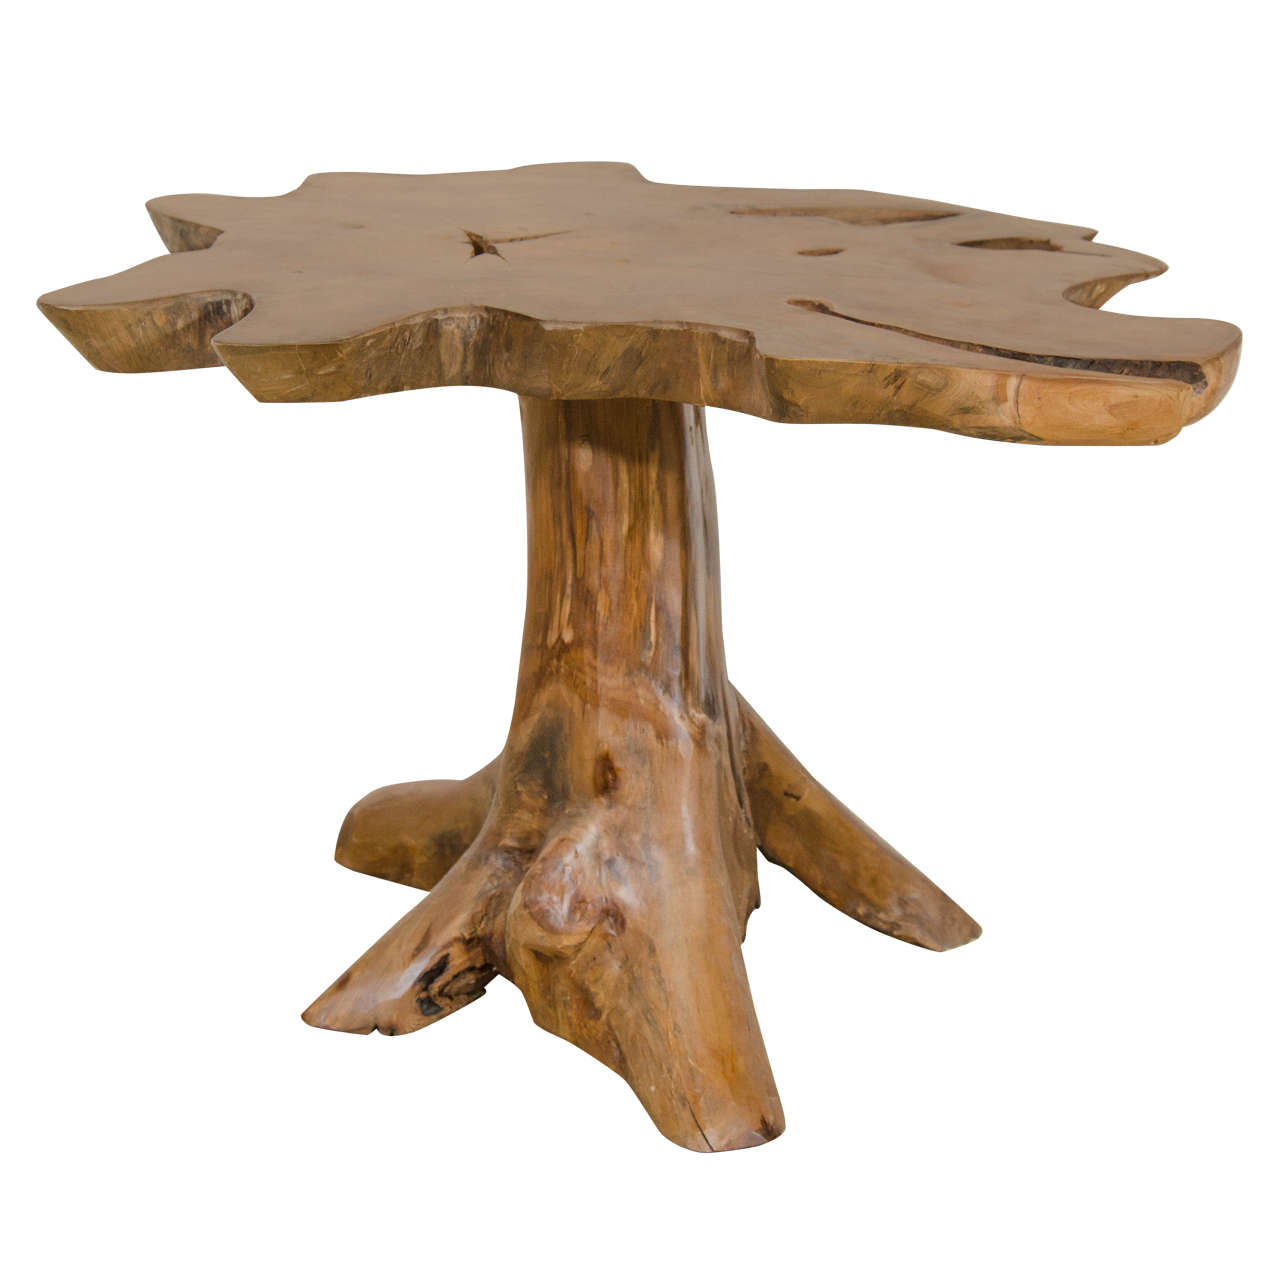 Vintage Burled Cypress Wood Live Edge Side Table At 1stdibs: Vintage Live Edge, Wood Occasional Or Side Table At 1stdibs